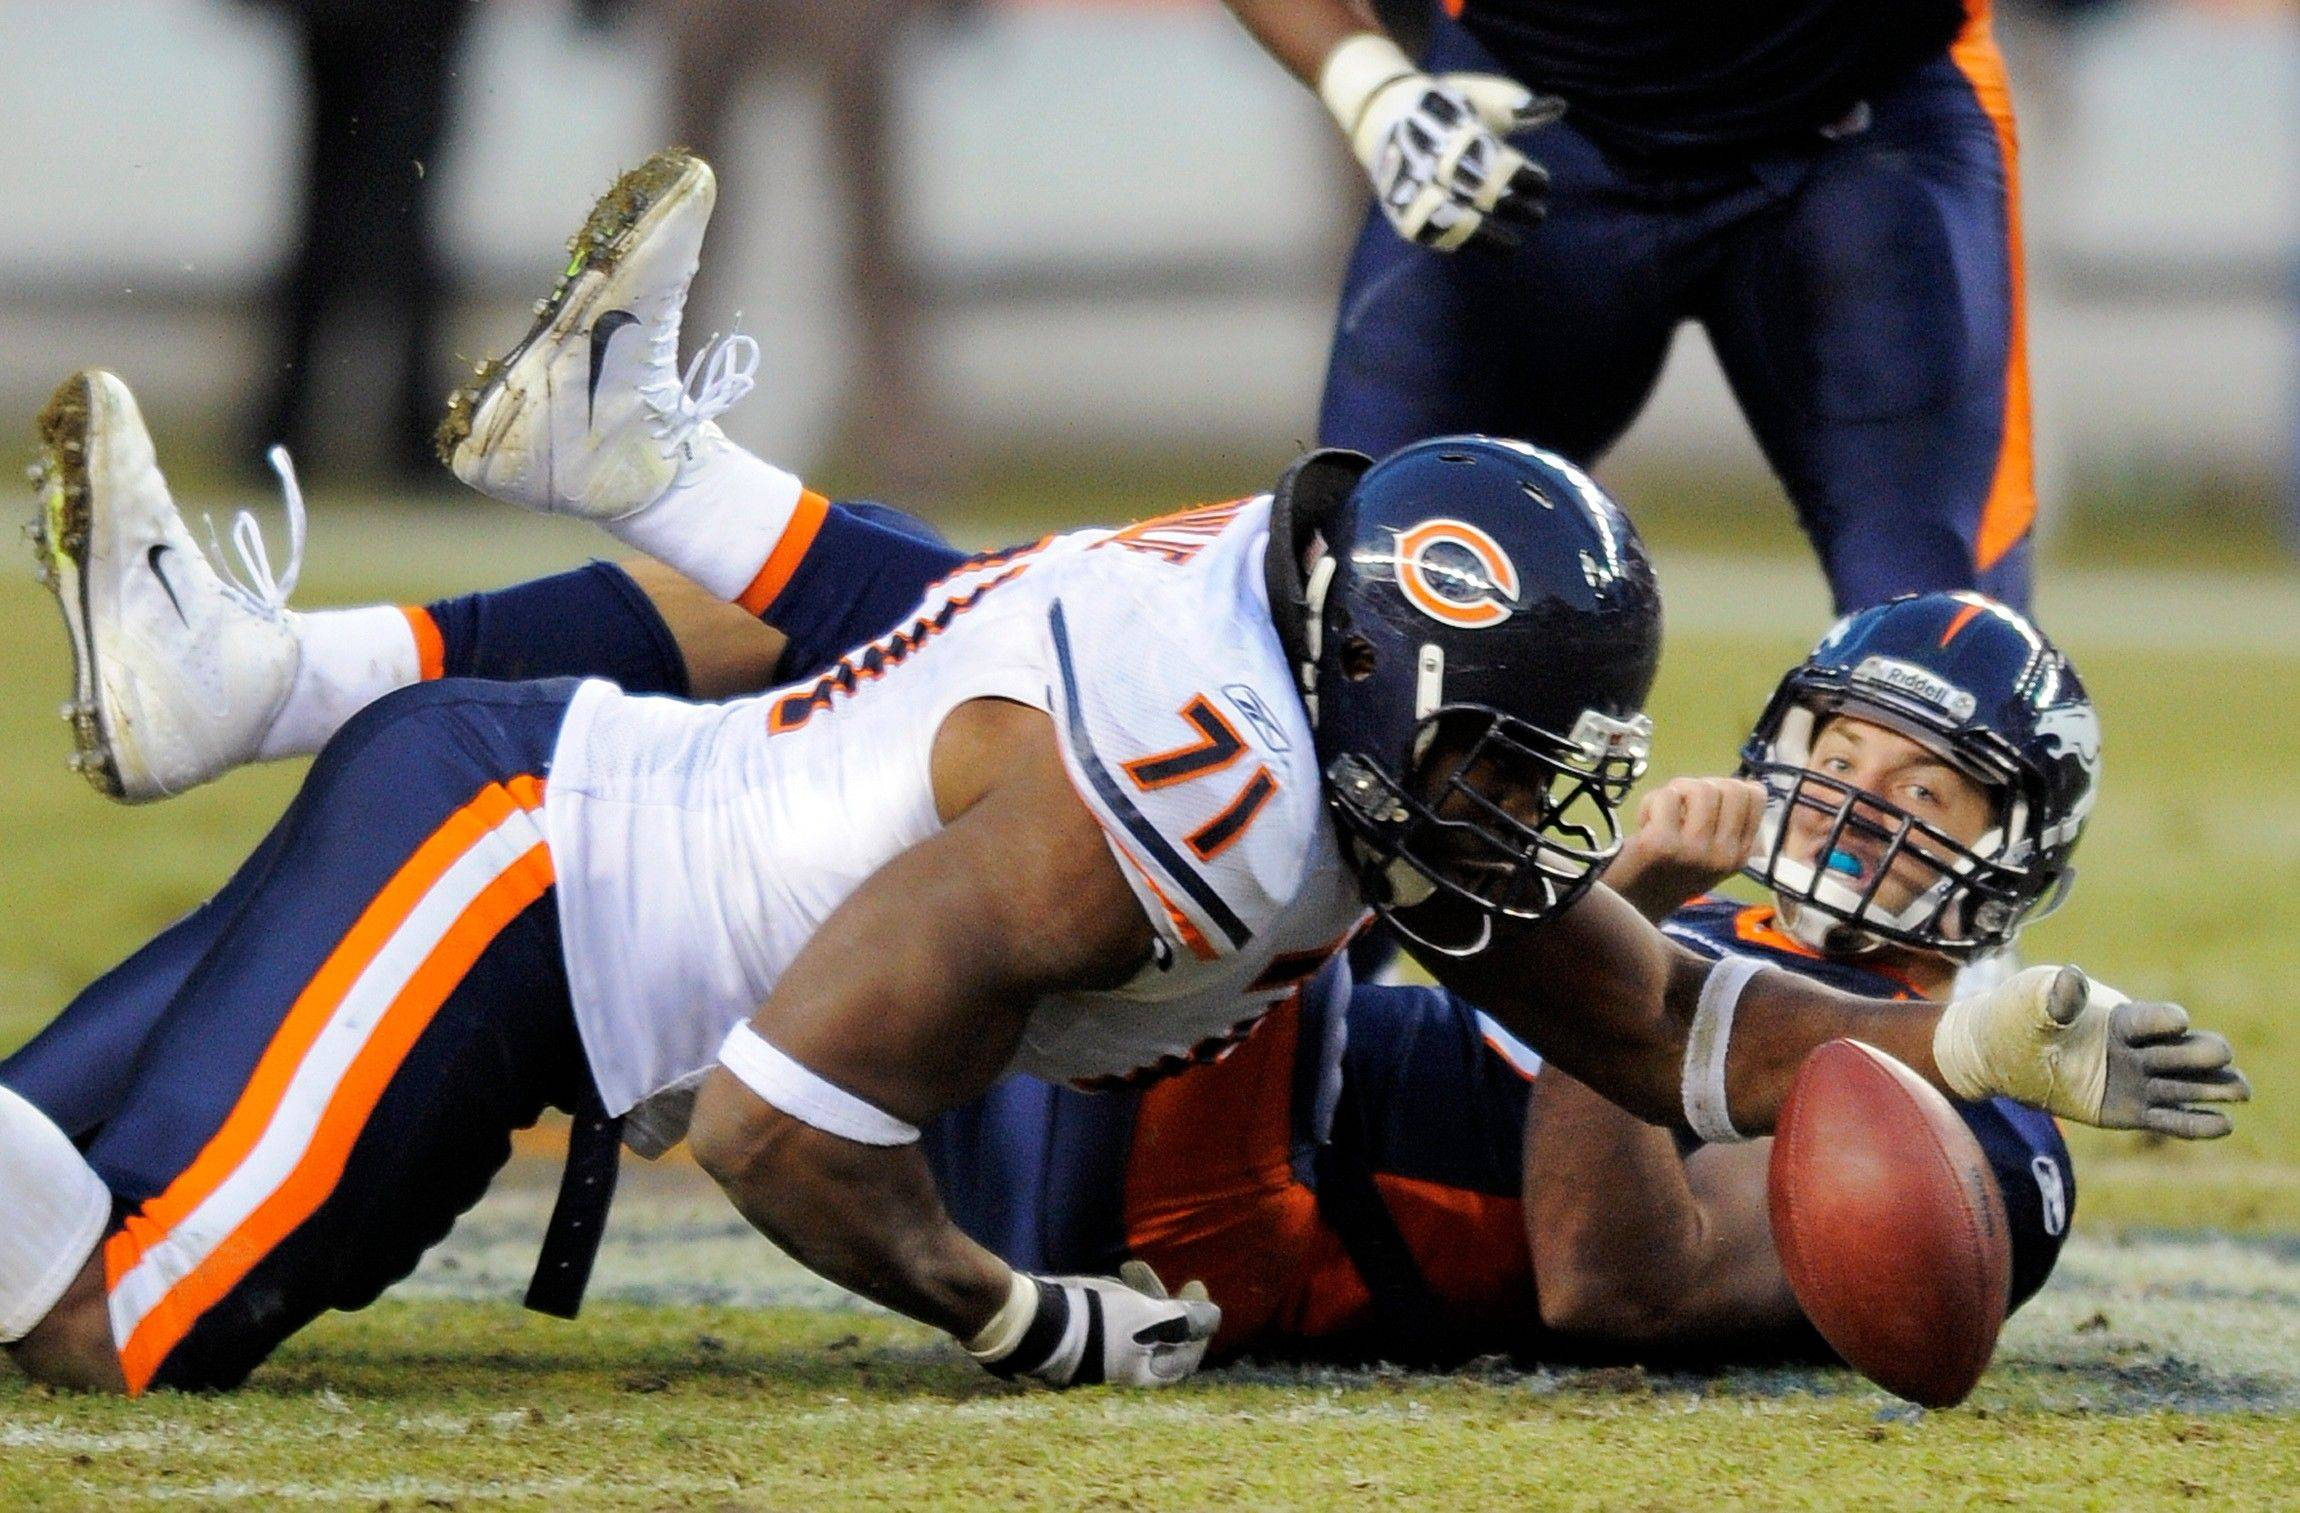 Chicago Bears defensive end Israel Idonije (71) recovers a fumble by Denver Broncos quarterback Tim Tebow (15) in the fourth quarter.